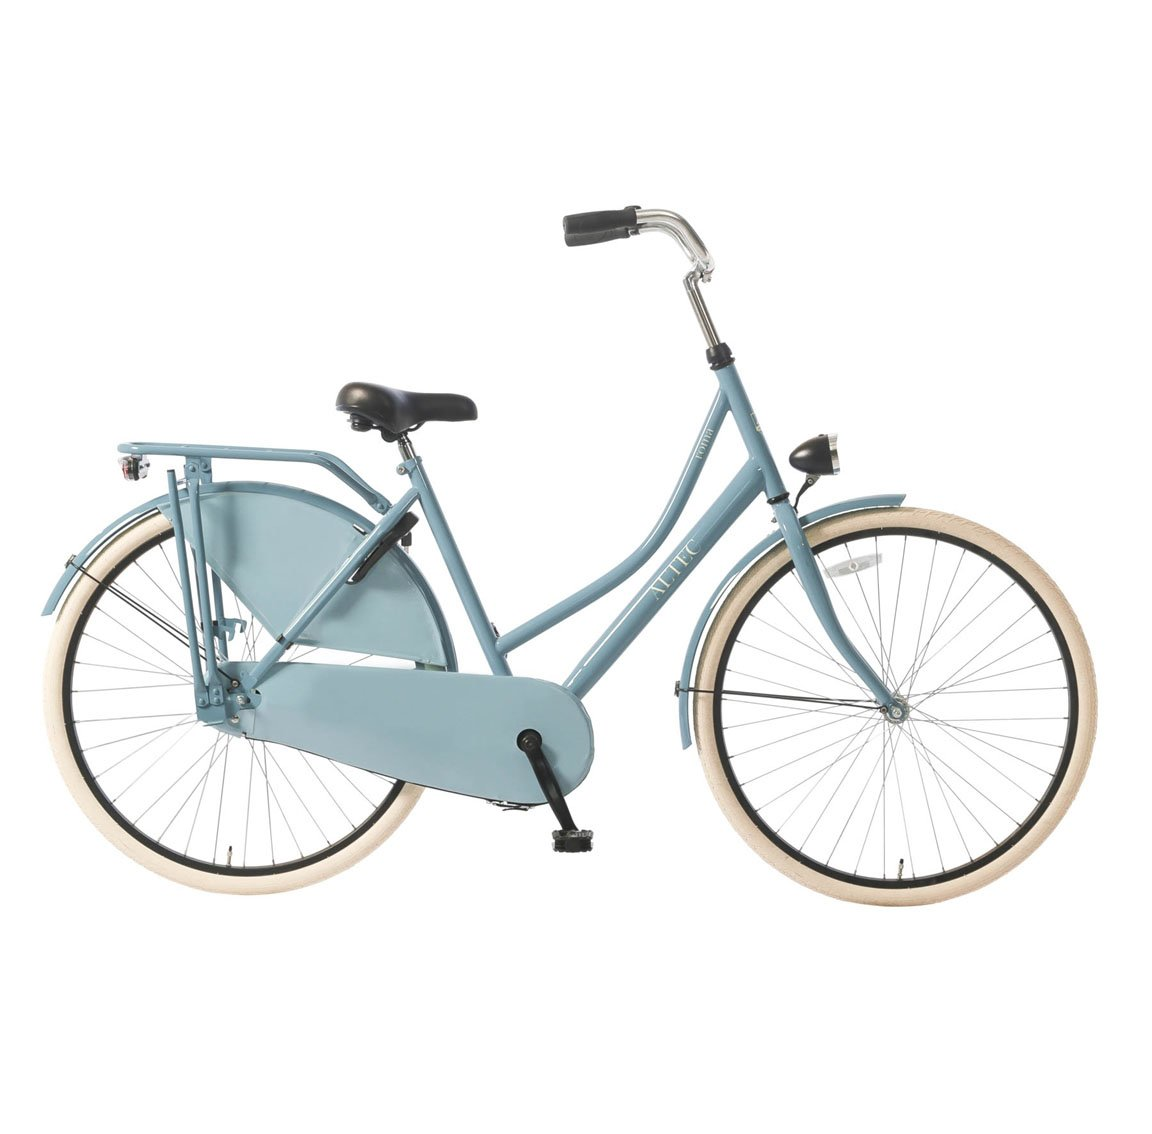 Altec-Roma-28-inch-Omafiets-Turquoise-2018